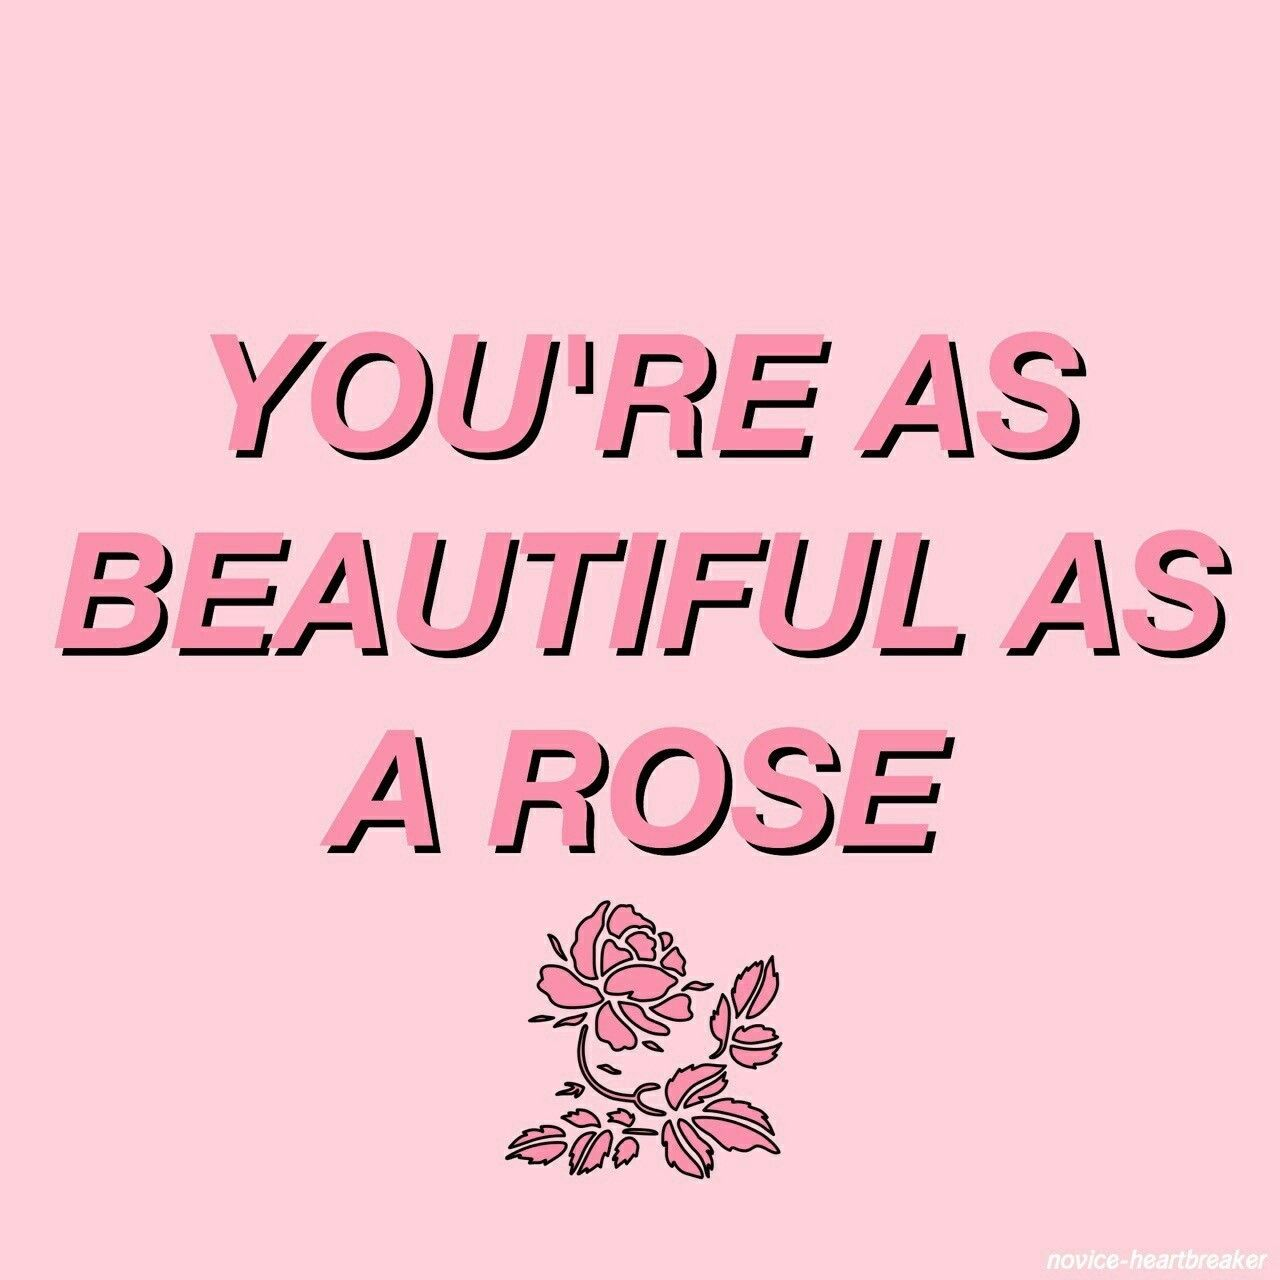 Resultado De Imagen De Pink Aesthetic Quotes Tumblr Quote Aesthetic Pink Aesthetic Pink Quotes Find gifs with the latest and newest hashtags! resultado de imagen de pink aesthetic